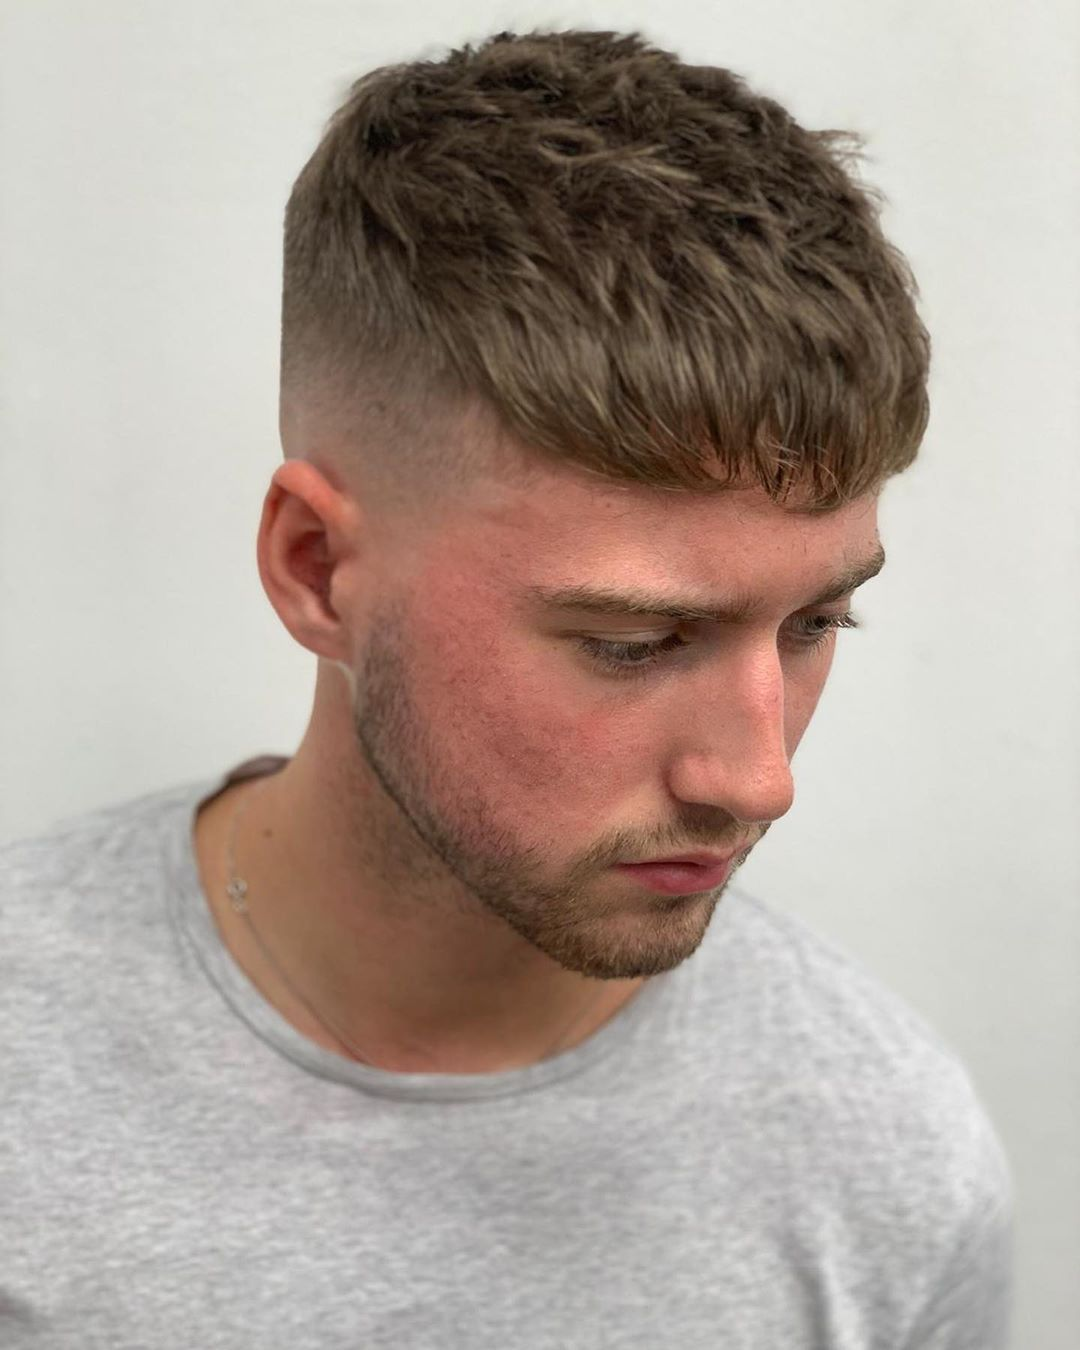 And Great Haircuts In Particular In 2020 Thin Hair Men Mens Hairstyles Short Mens Haircuts Short